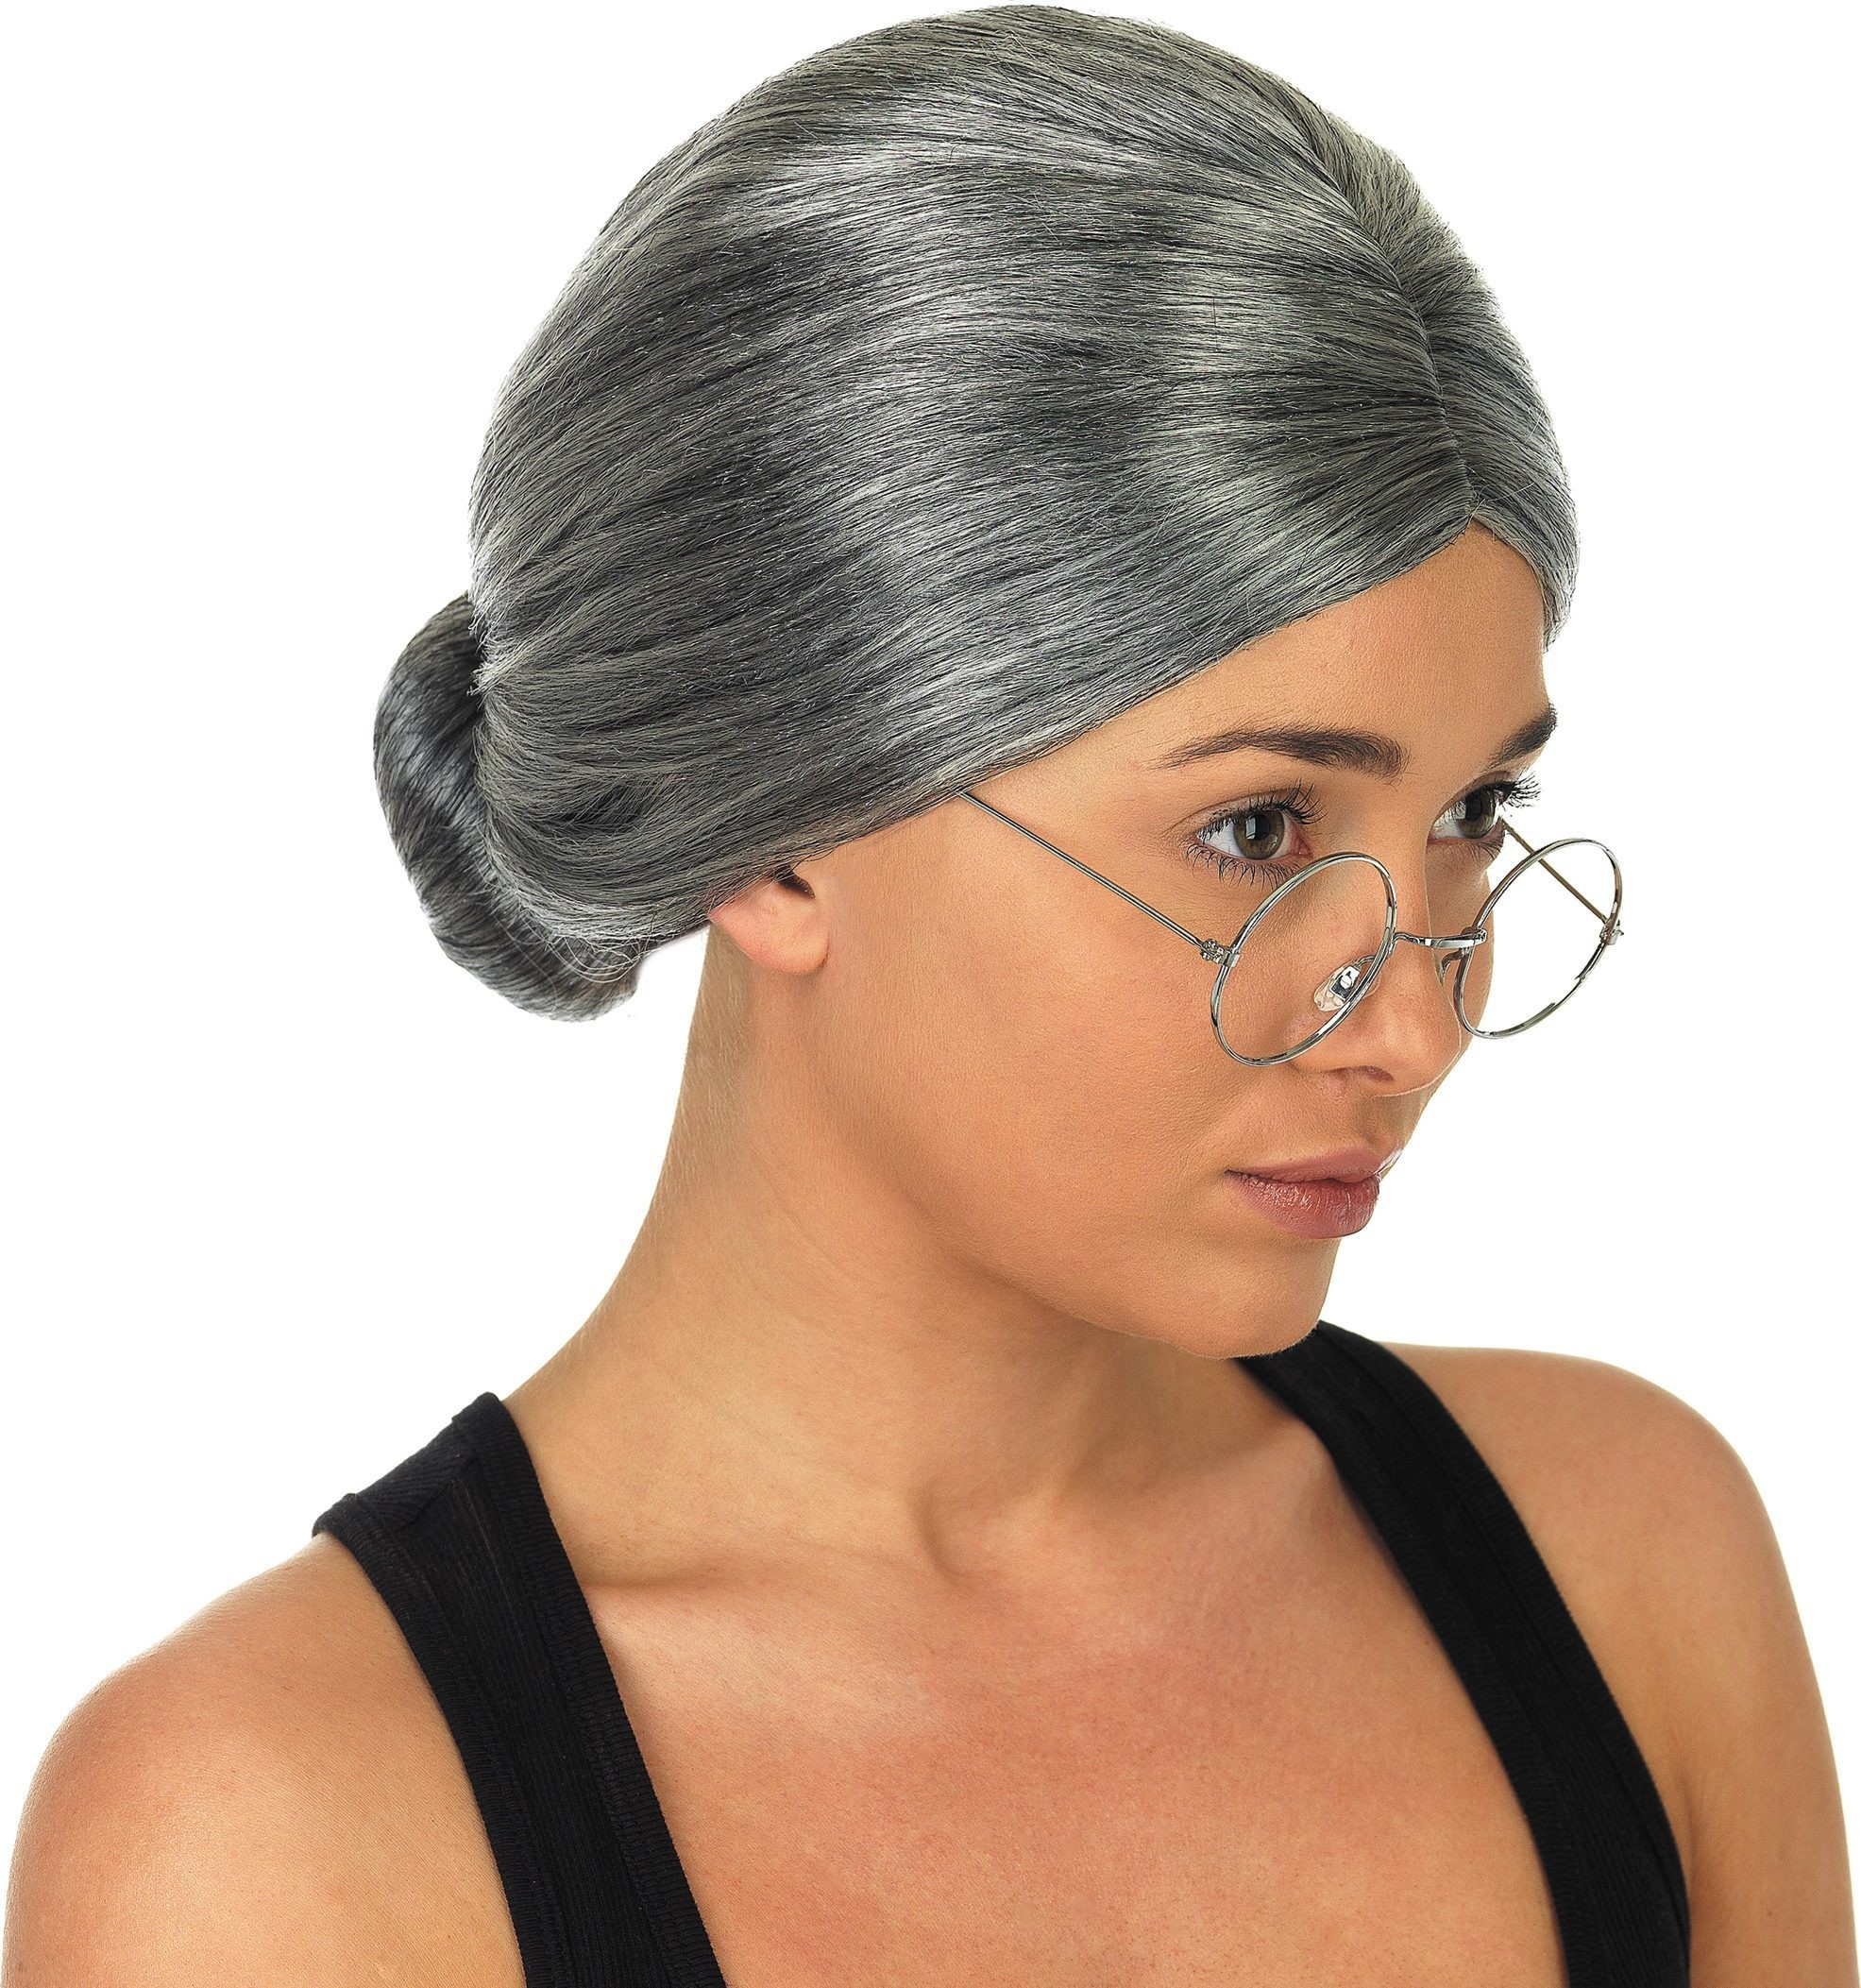 Granny Wig (Fancy Dress Wigs)